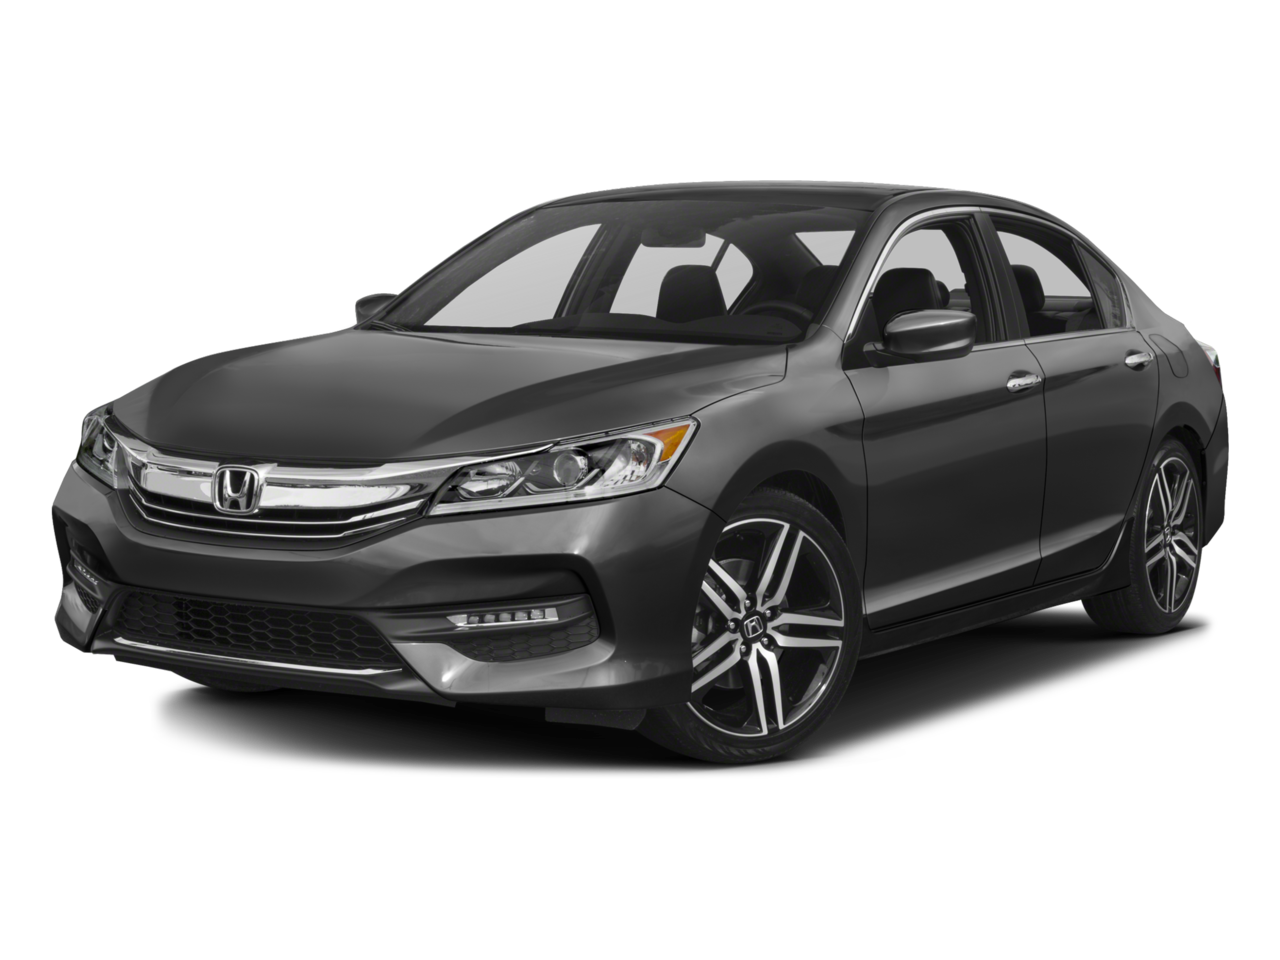 2016 honda accord new cars for sale in springfield mo. Black Bedroom Furniture Sets. Home Design Ideas